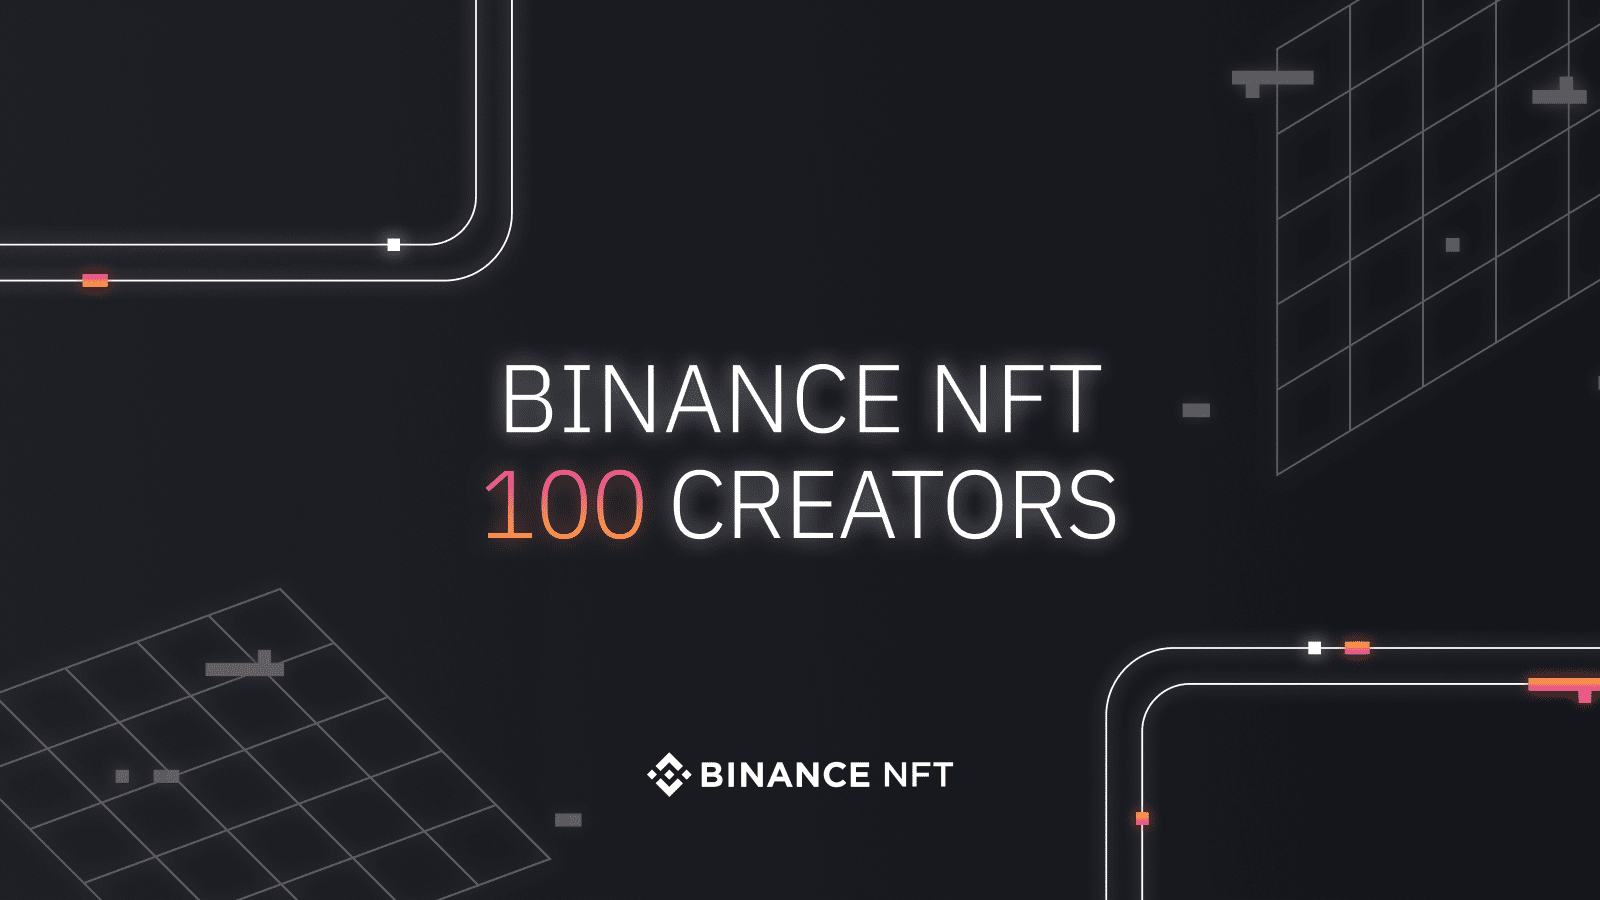 Meet the Artists and Creators Behind the Binance NFT Marketplace: 100 Creators Revealed Cryptocurrency Trading Signals, Strategies & Templates | DexStrats